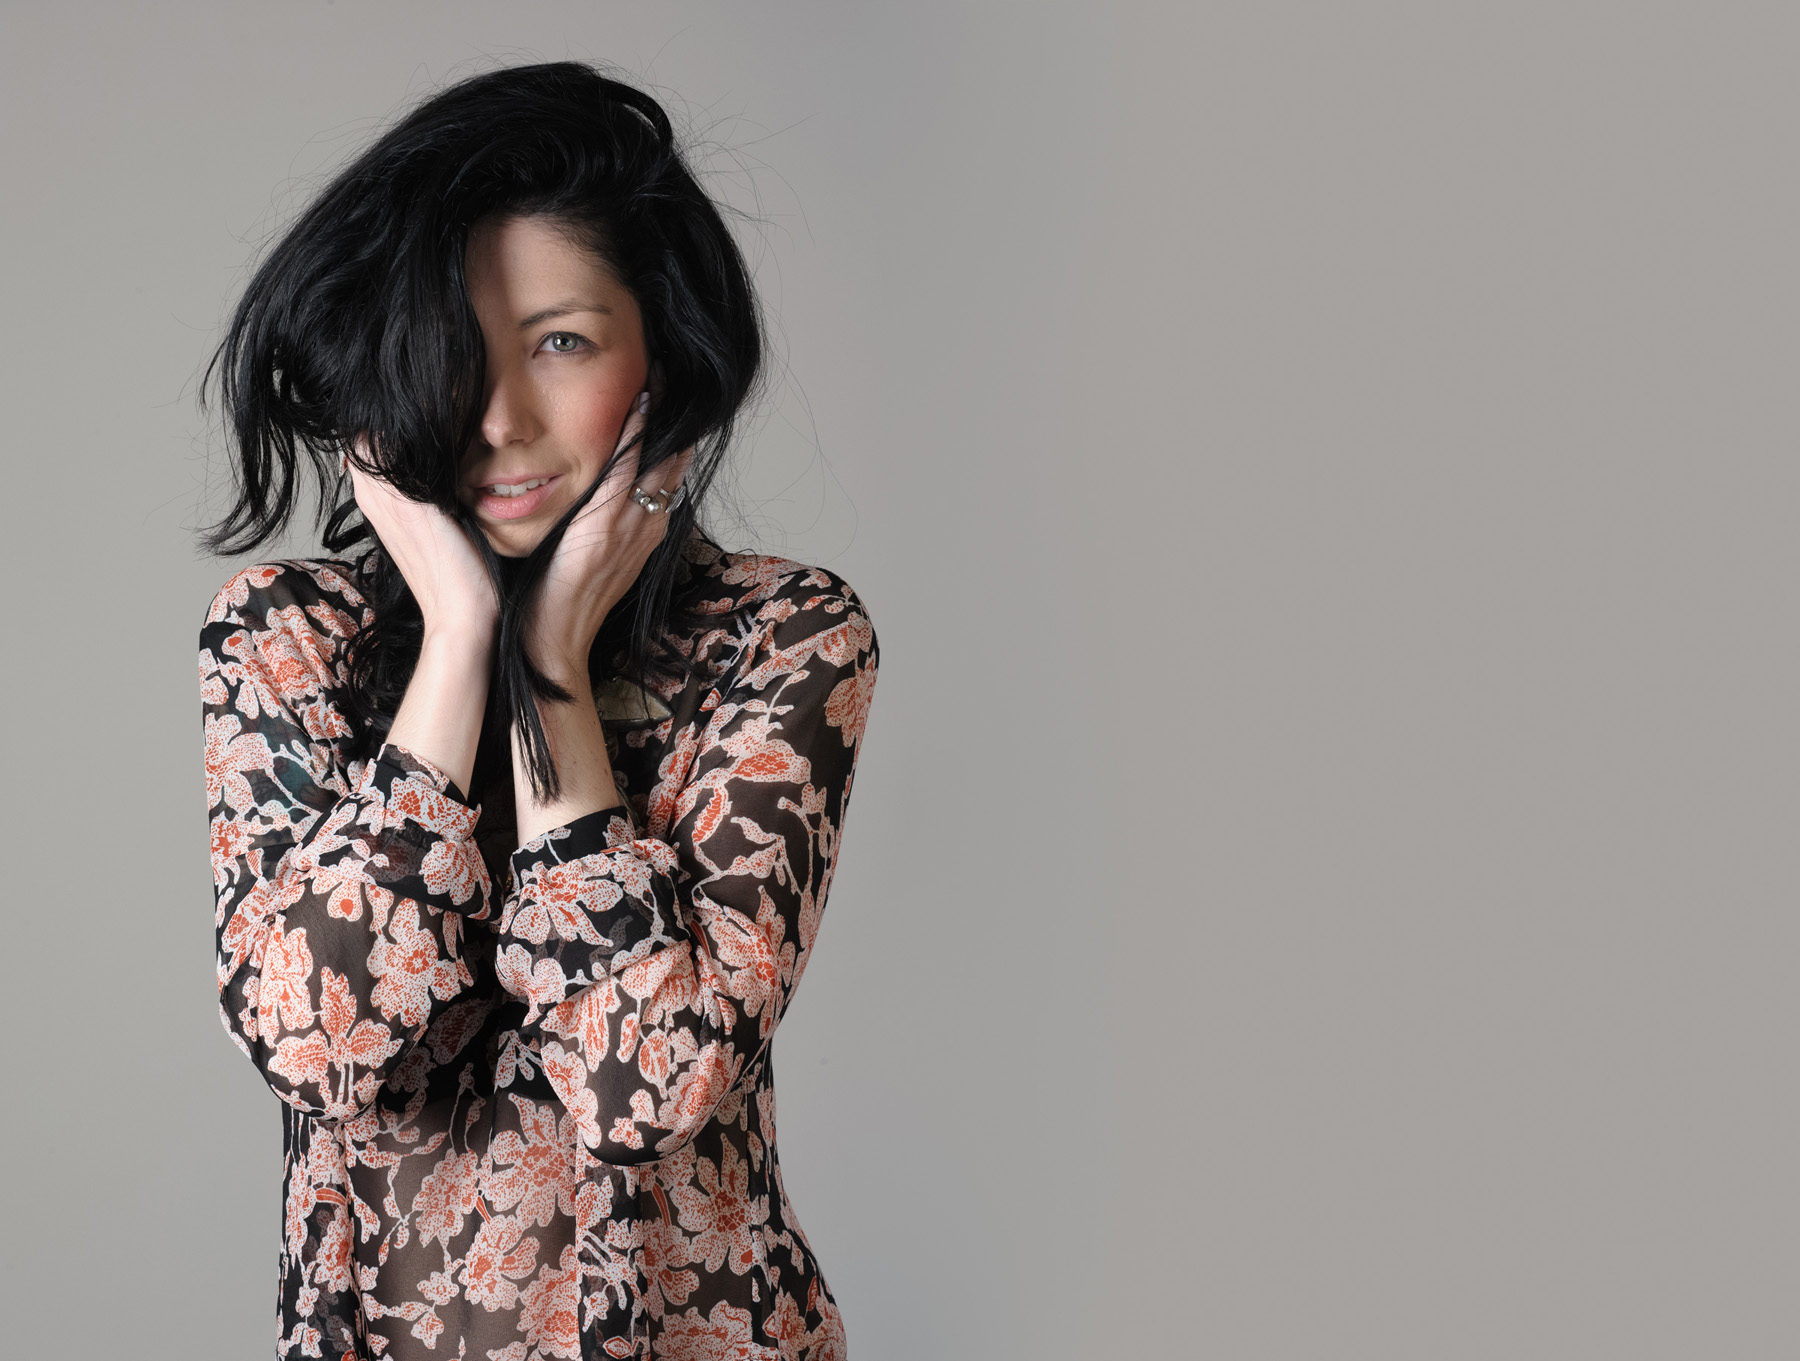 a portrait in studio of Jennifer wearing a sheer flower patterned blouse with her hand on her face holding her long dark hair in front of her right eye.